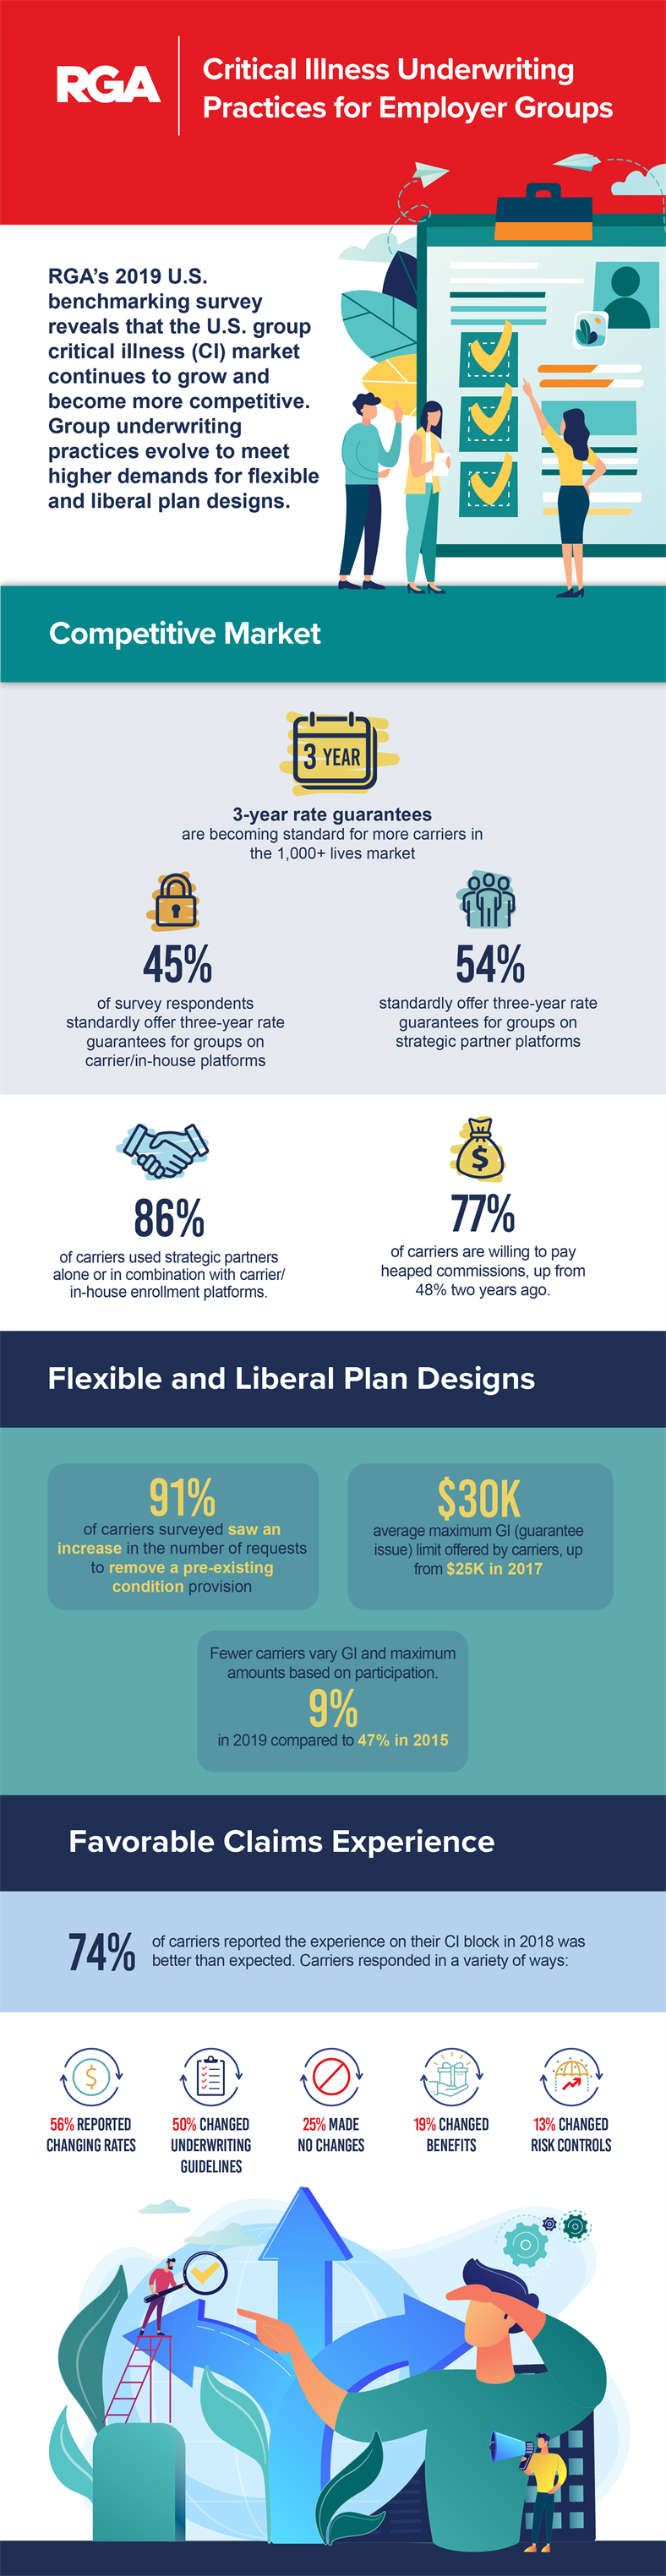 RGA Critical Illness Underwriting Infographic